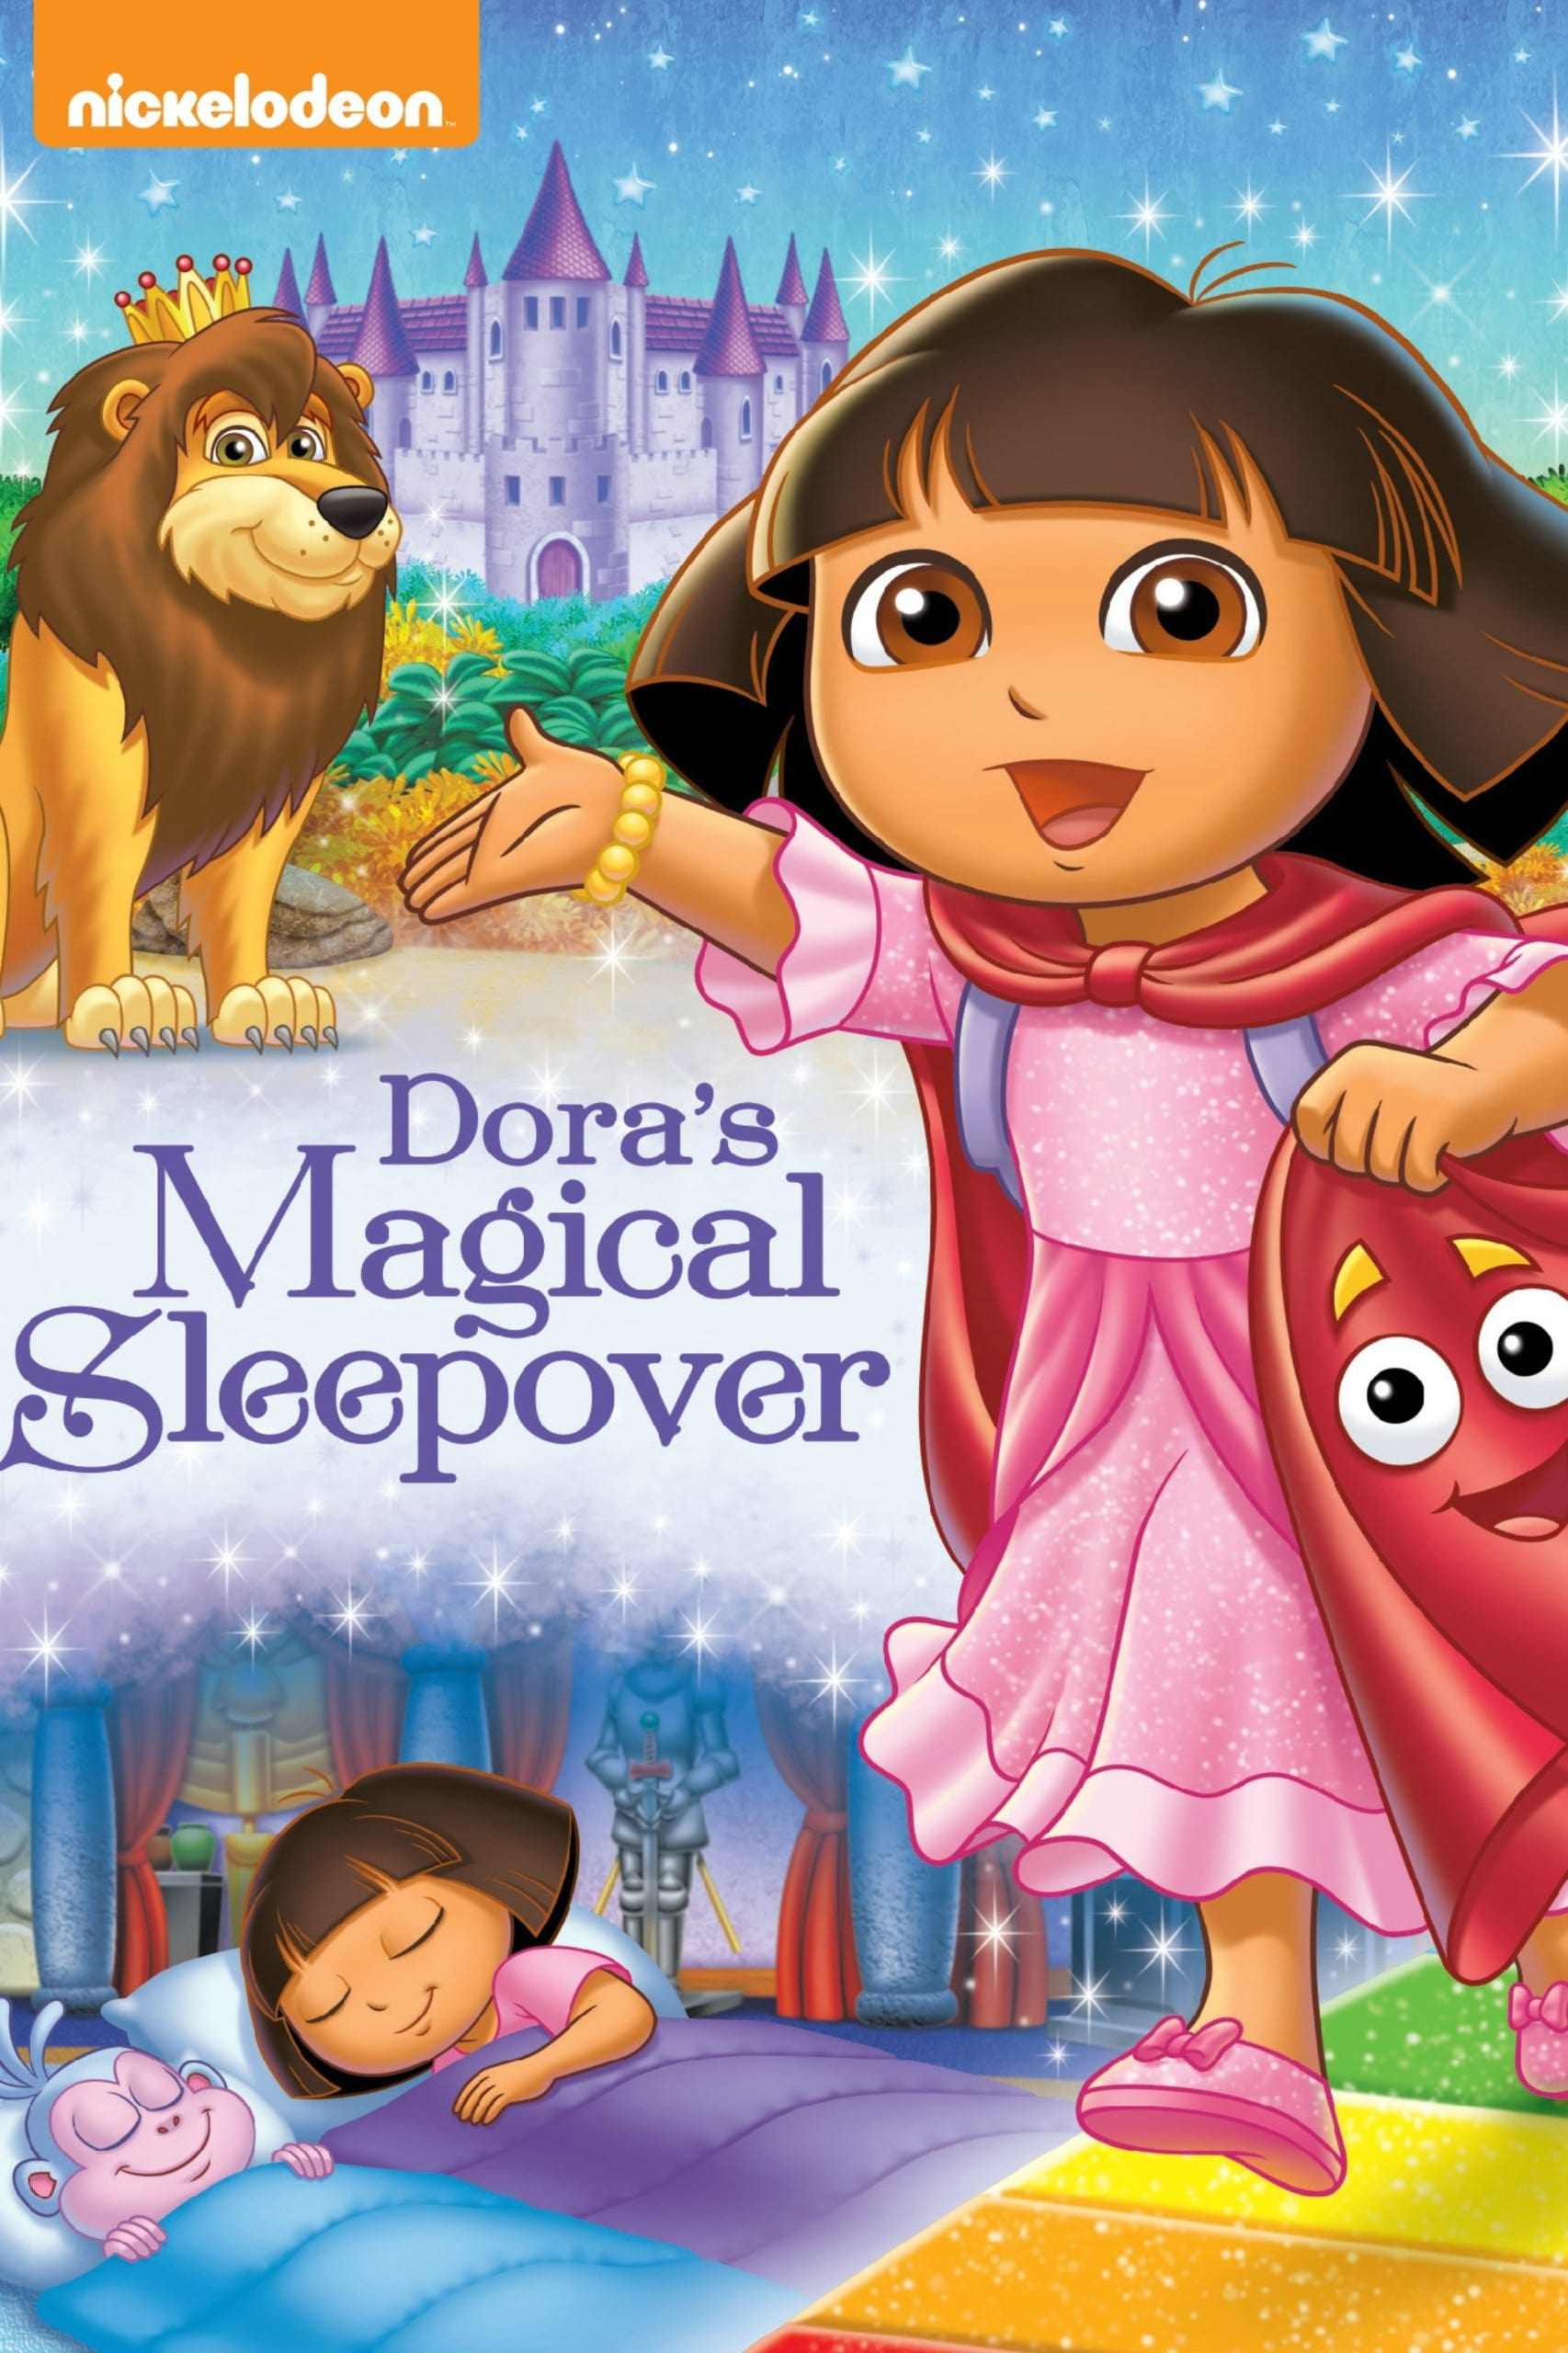 Dora the Explorer: Dora's Magical Sleepover (2014)